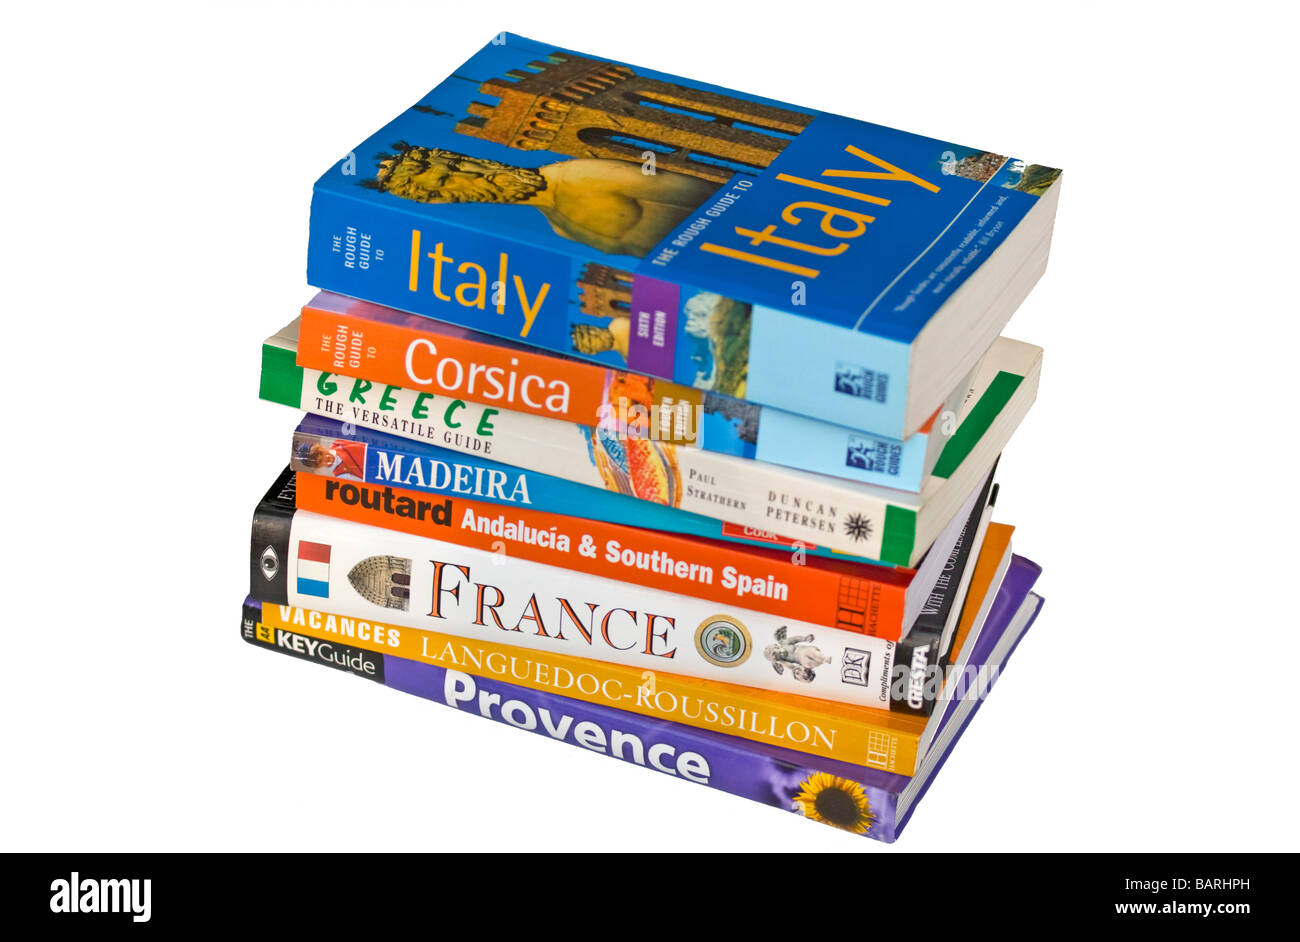 Cut Out of Stacked Travel Guide Books - Stock Image